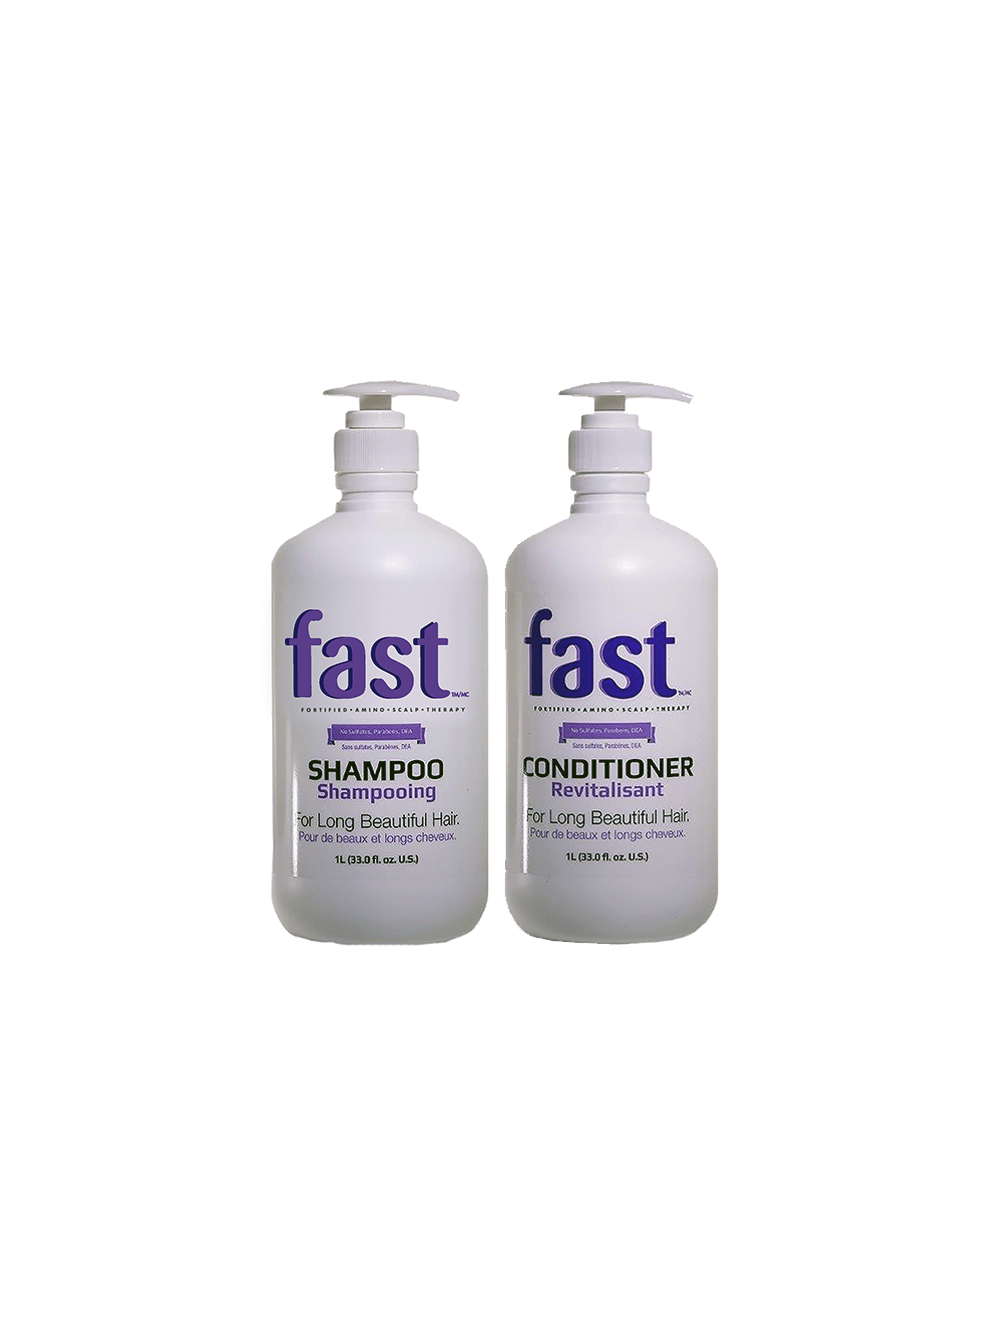 NISIM FAST Grow your hair Duo Pack 1Litre Shampoo & Conditioner - Beaut